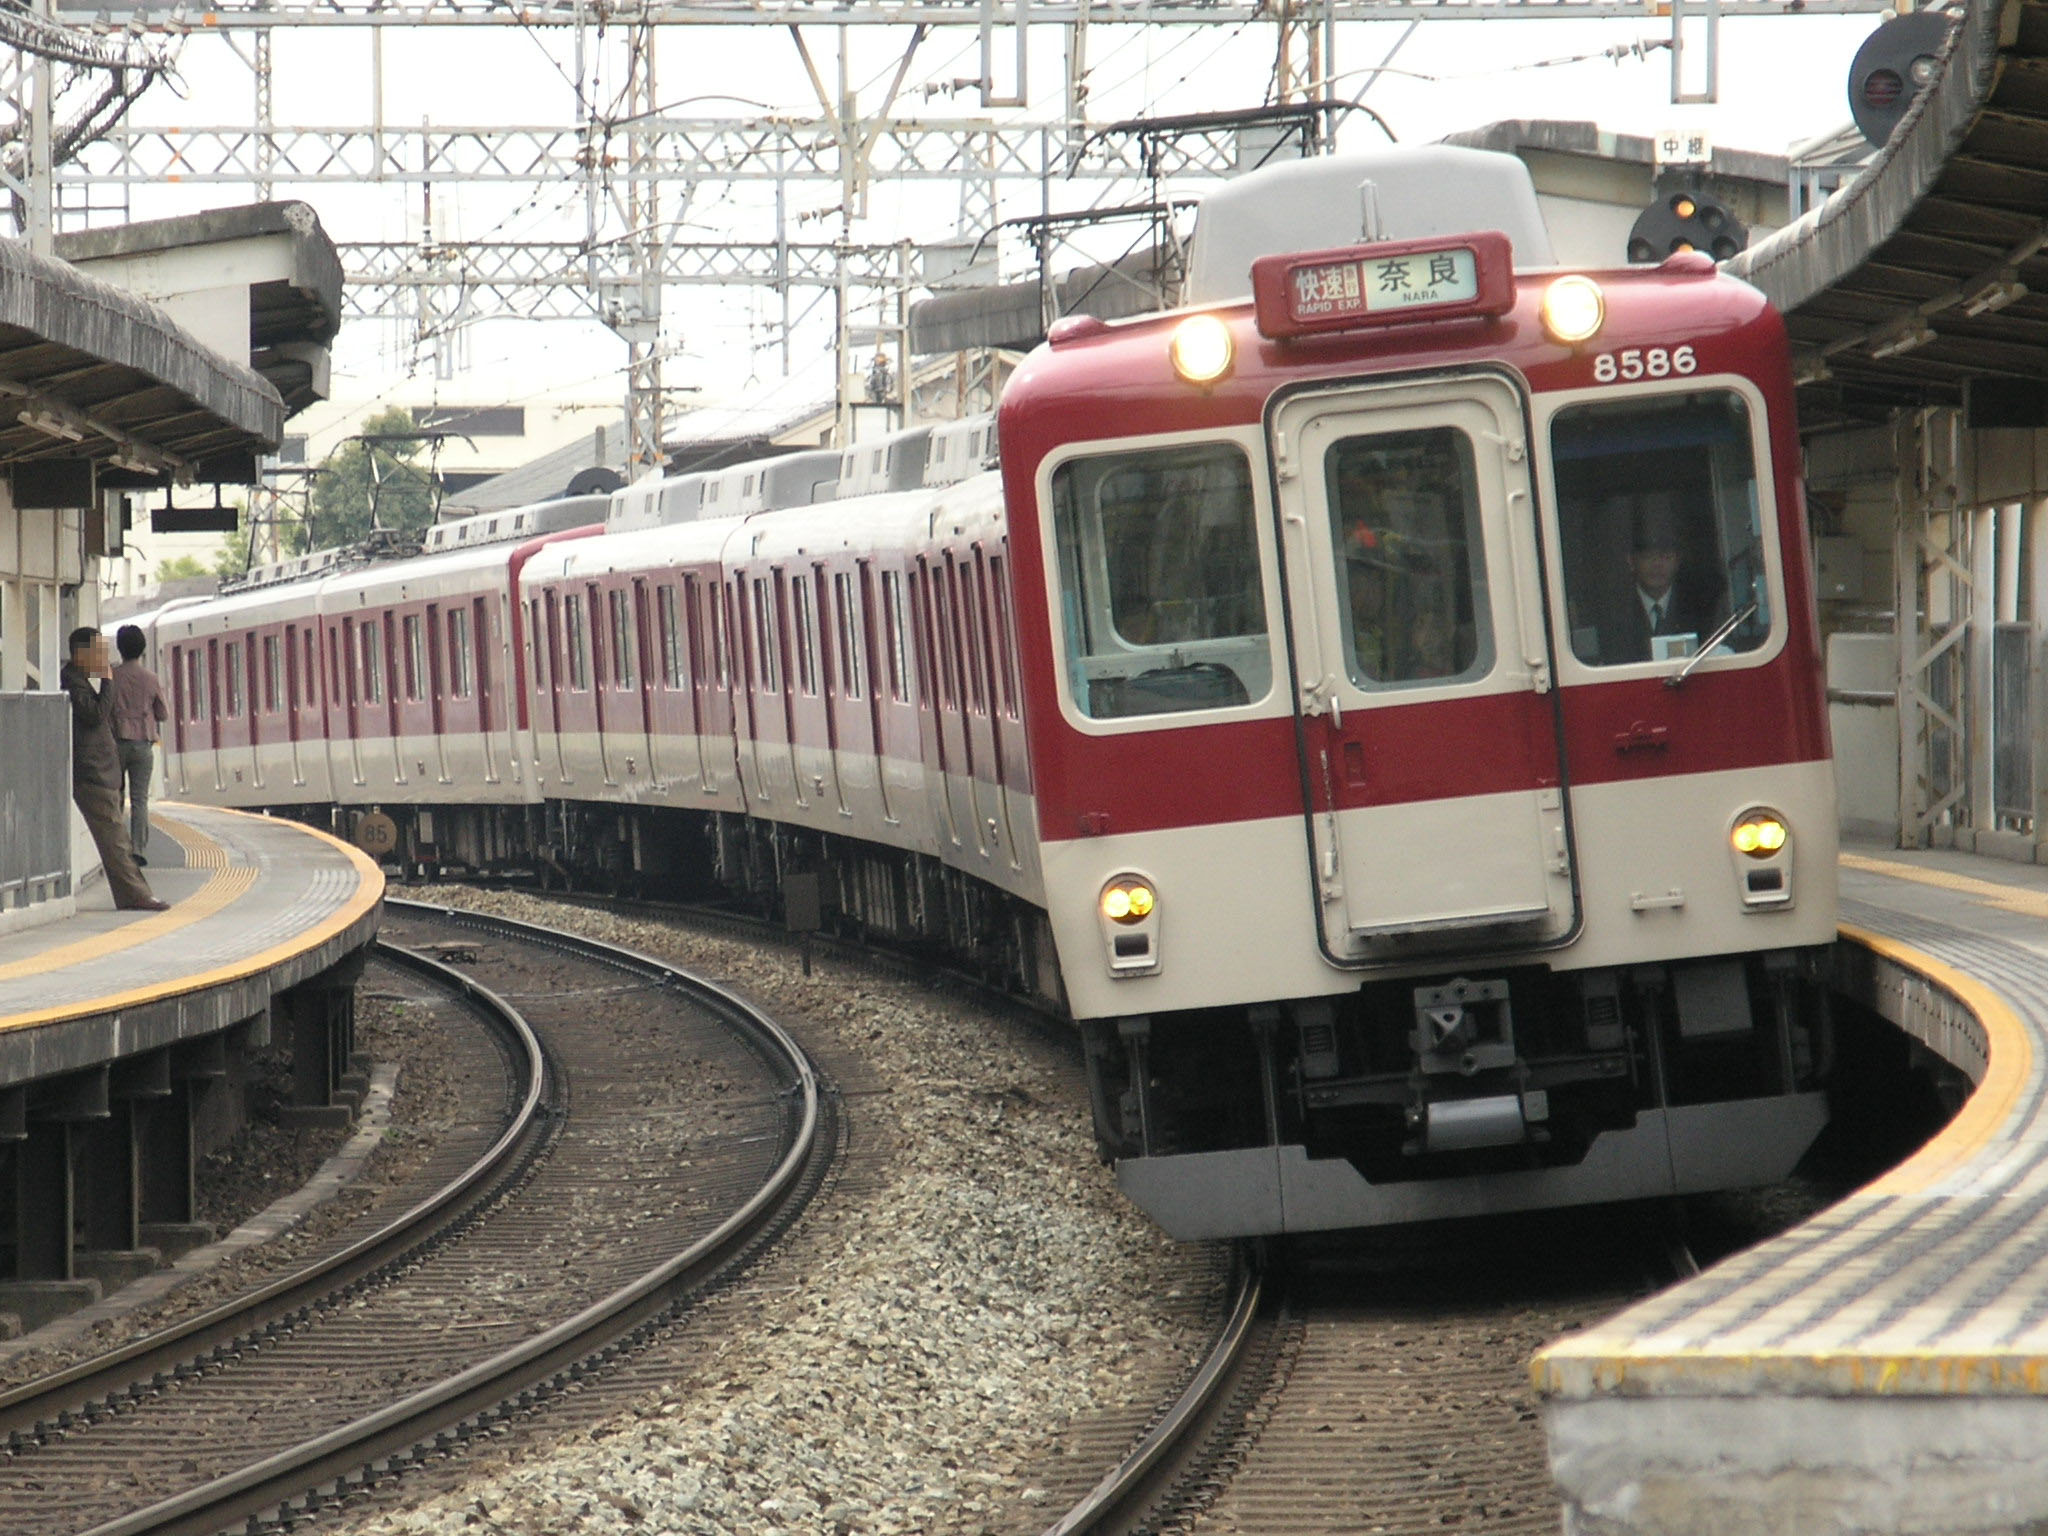 About: 近鉄8000系電車